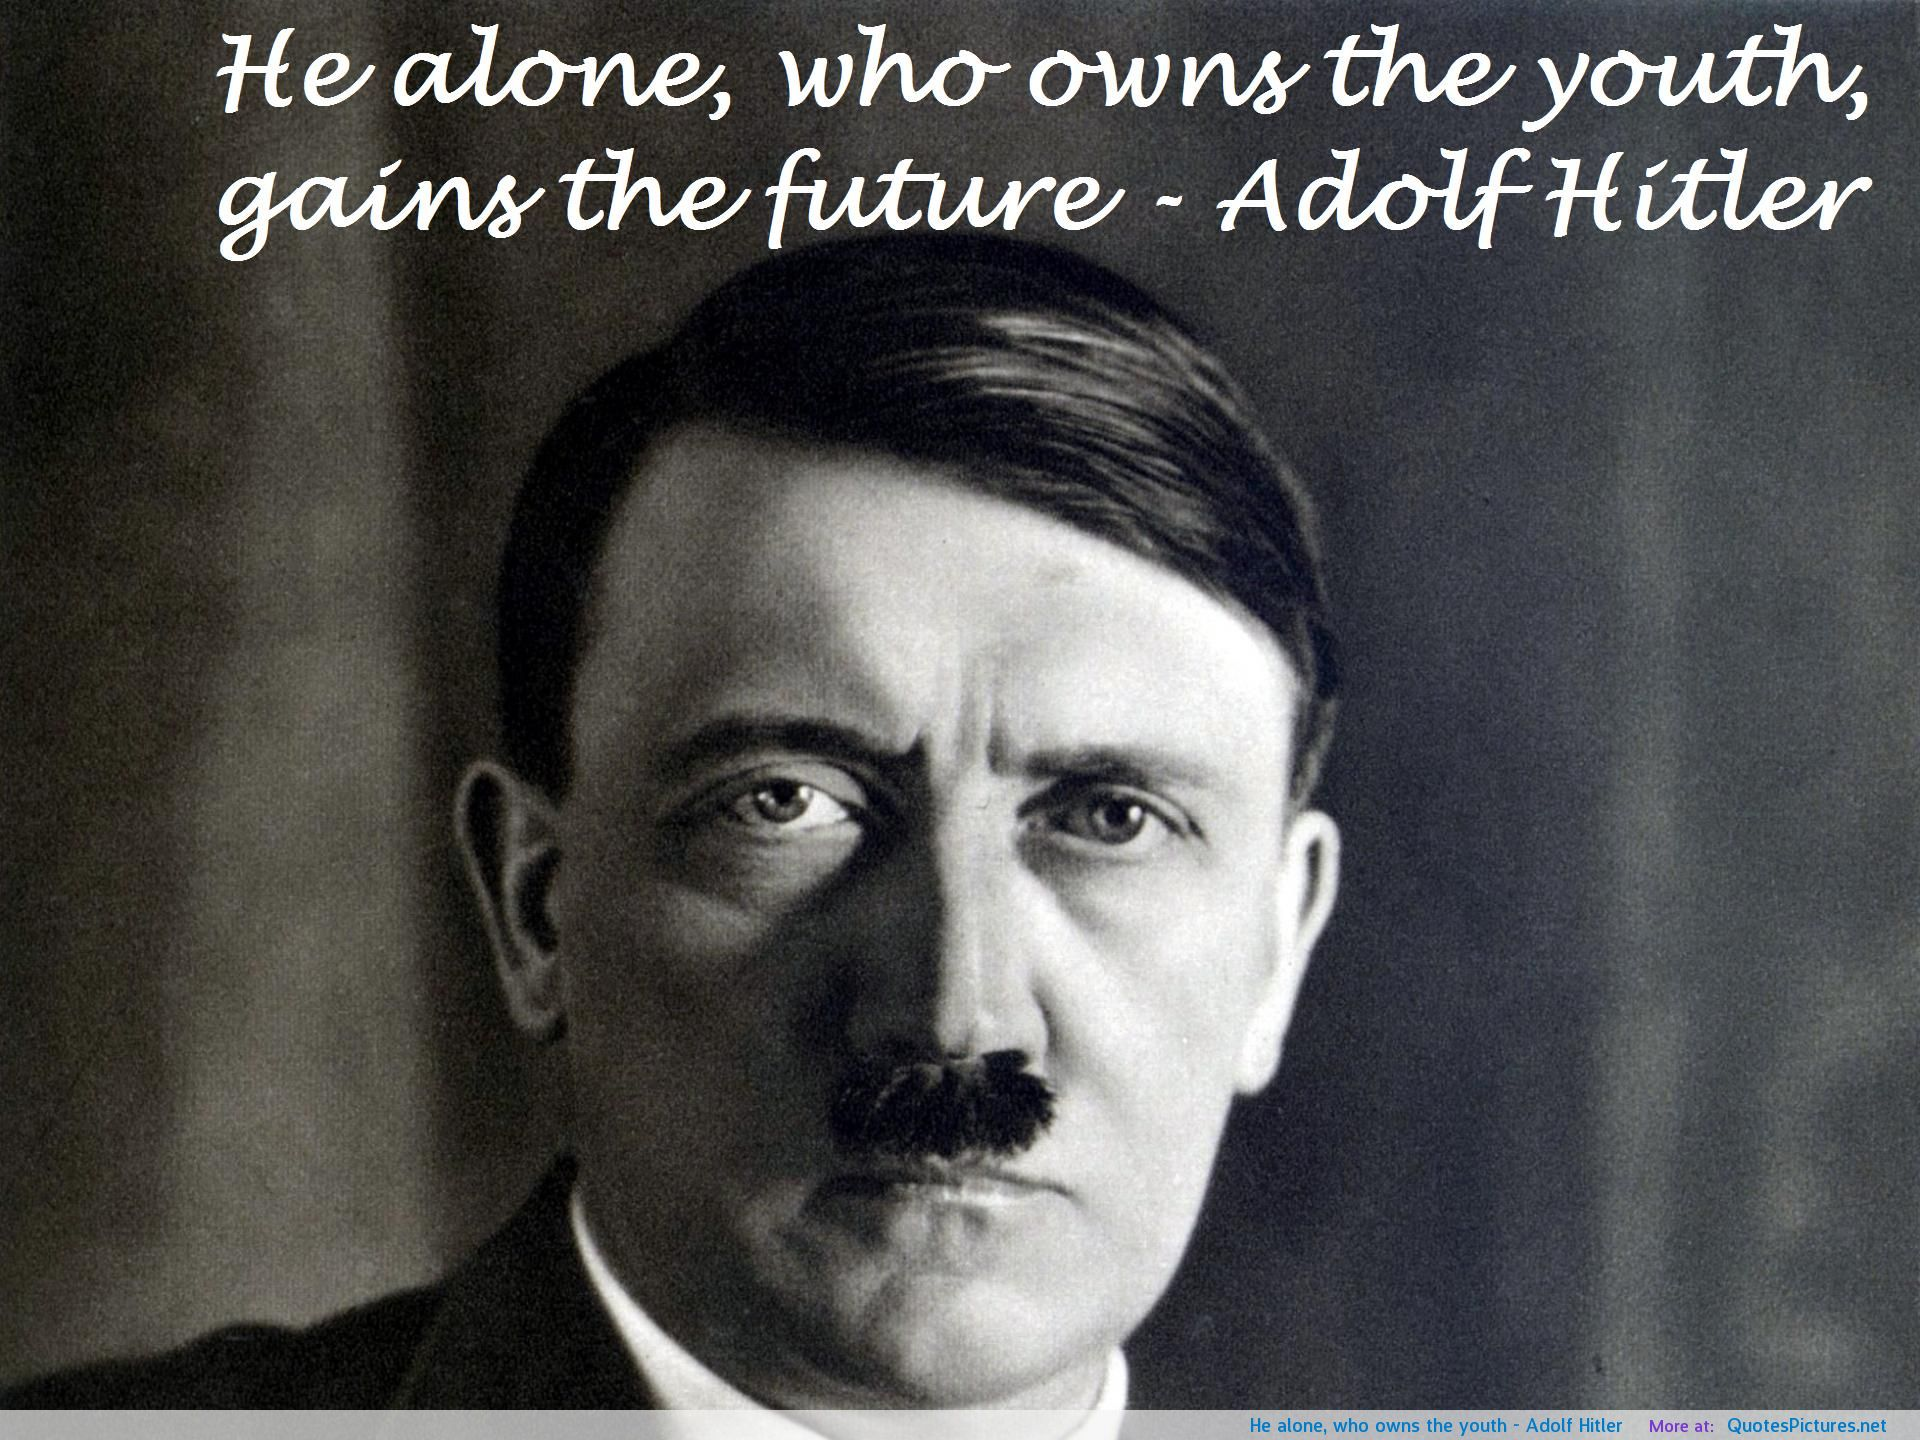 He alone, who owns the youth ~ Adolf Hitler